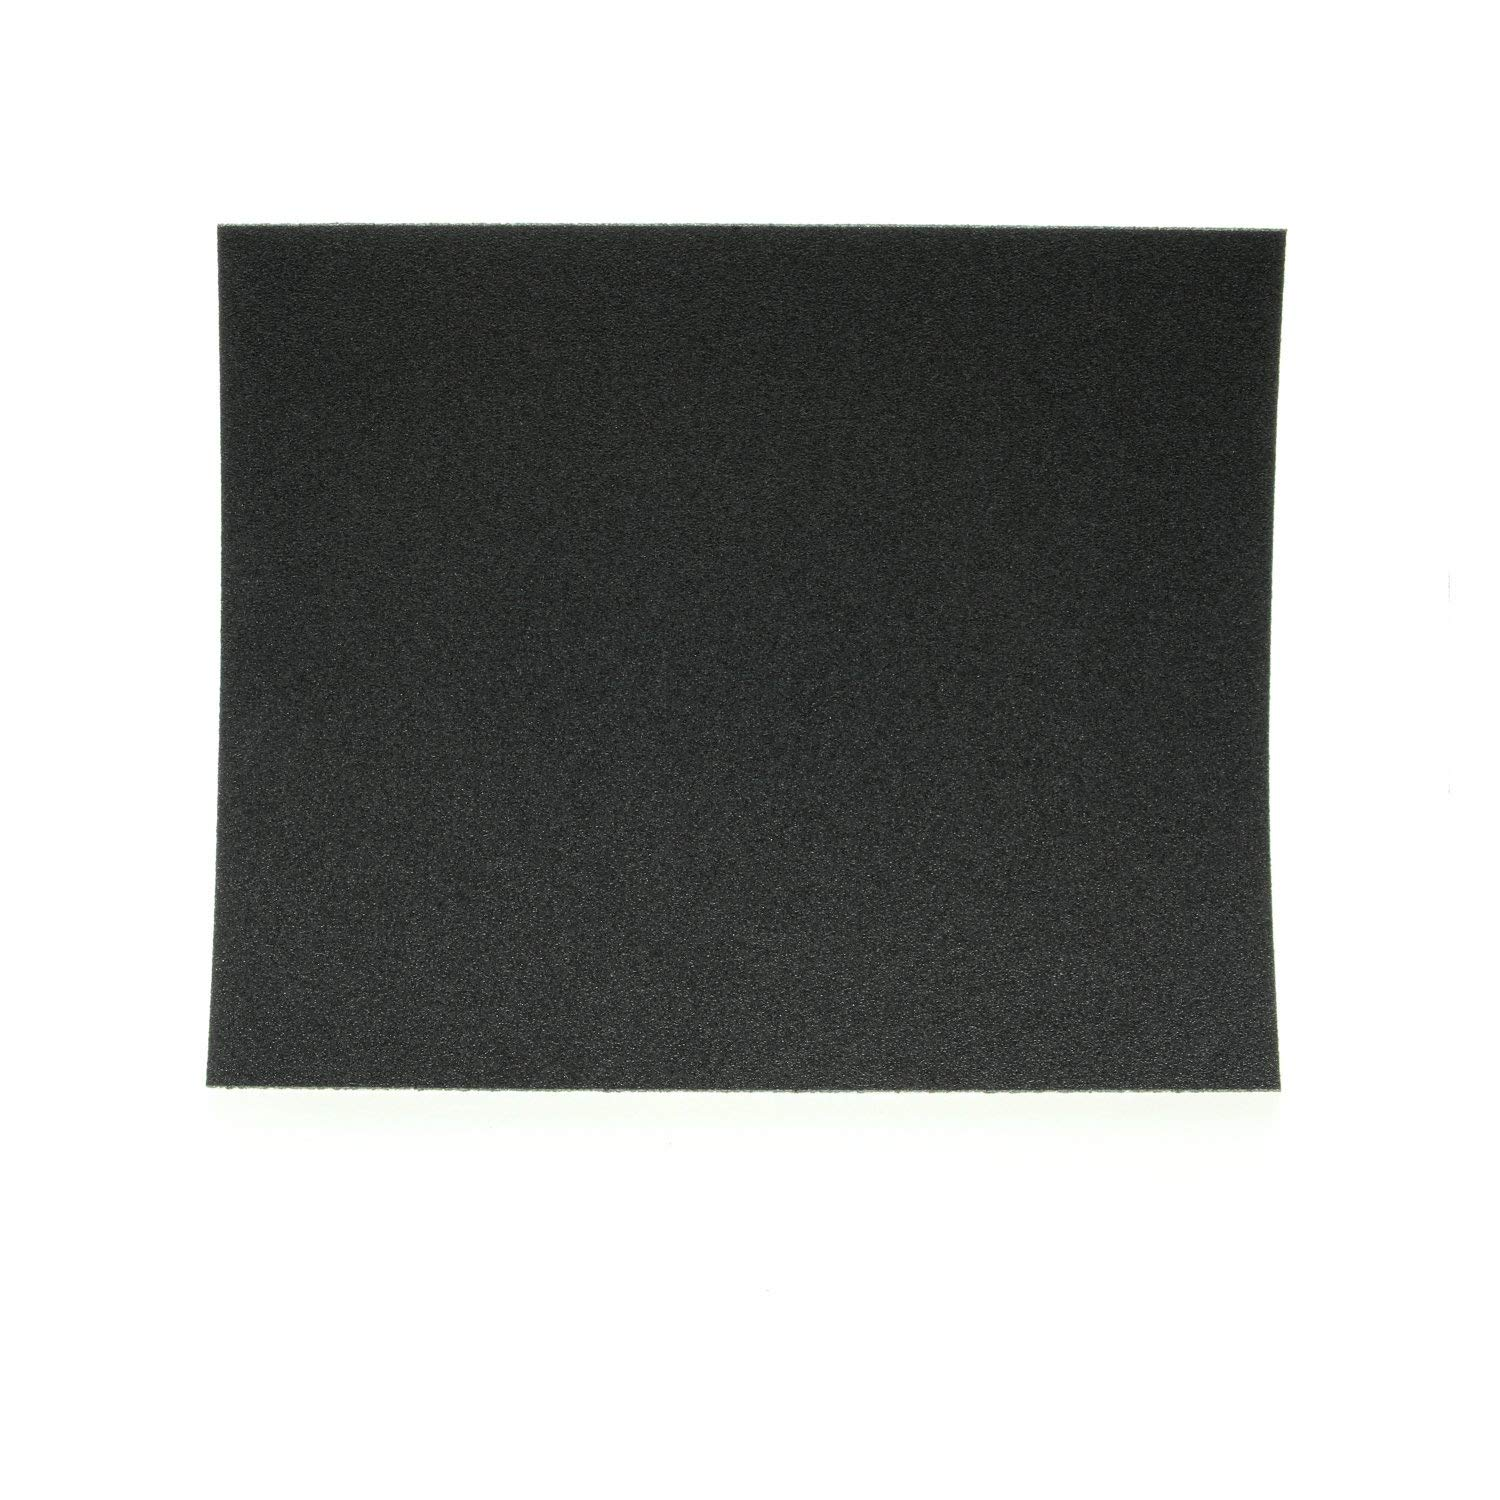 3M Wetordry Sandpaper Sheet 431Q 11 Length C Weight Paper Silicon Carbide